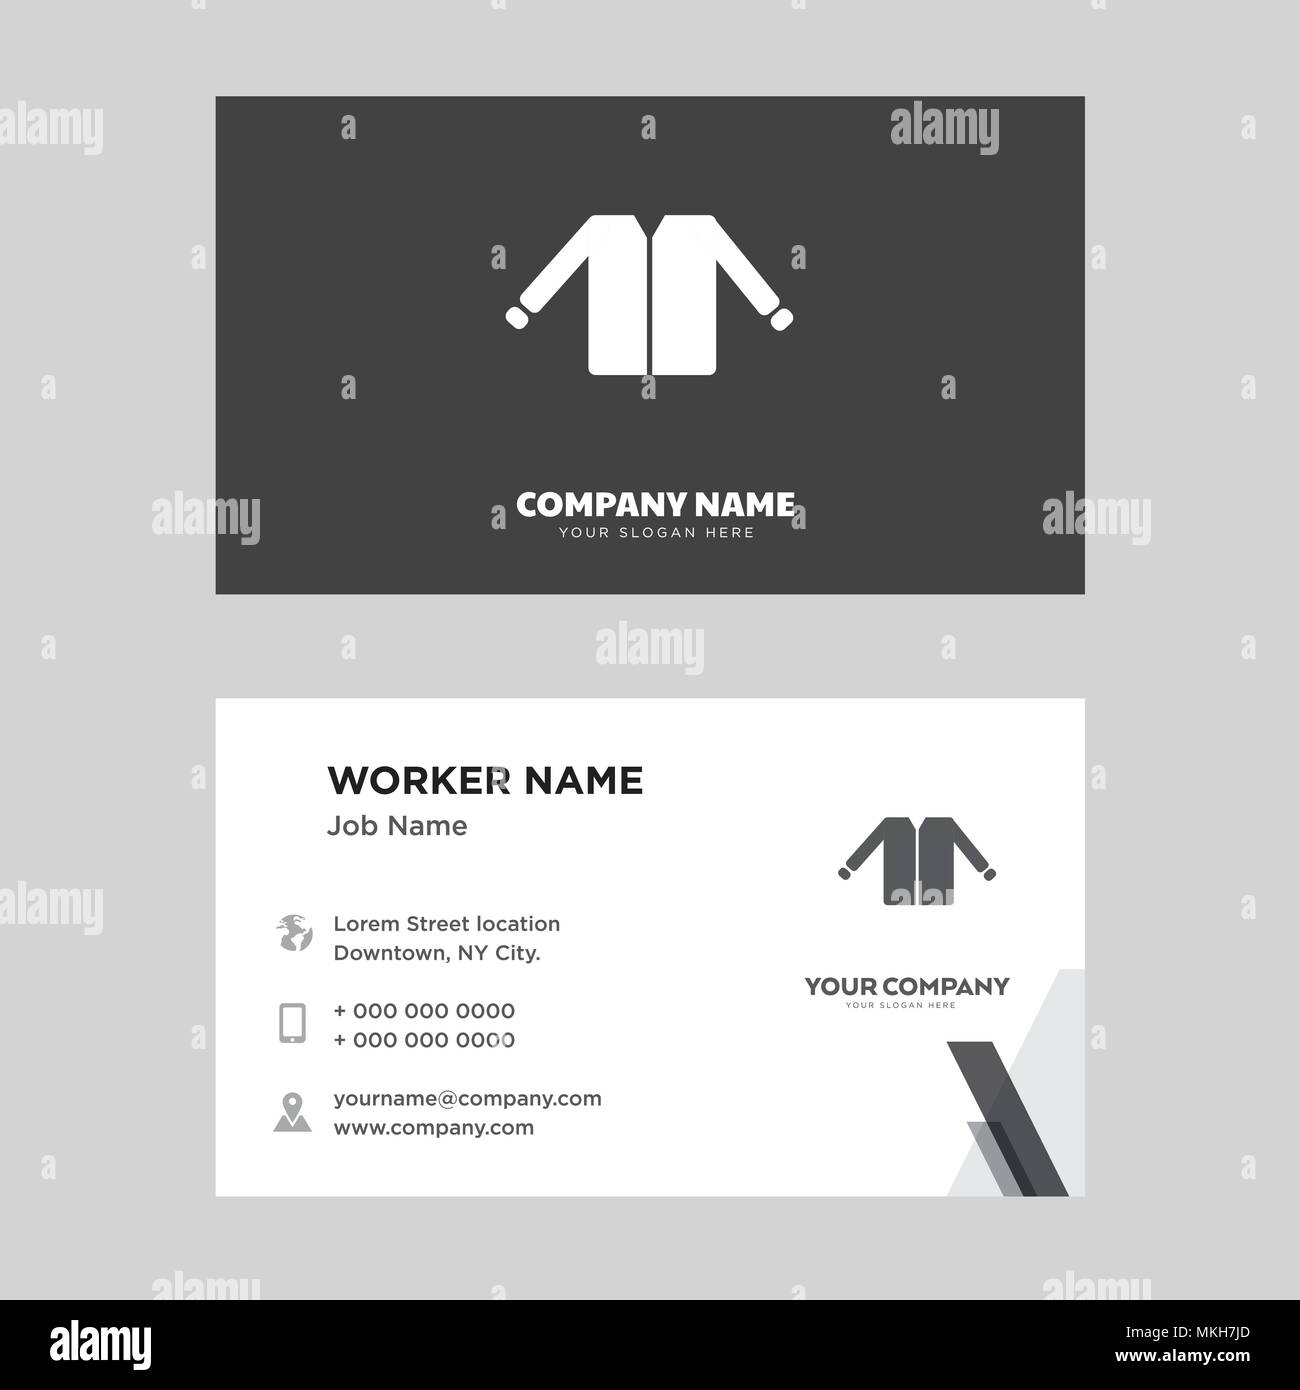 uniform business card design template visiting for your company